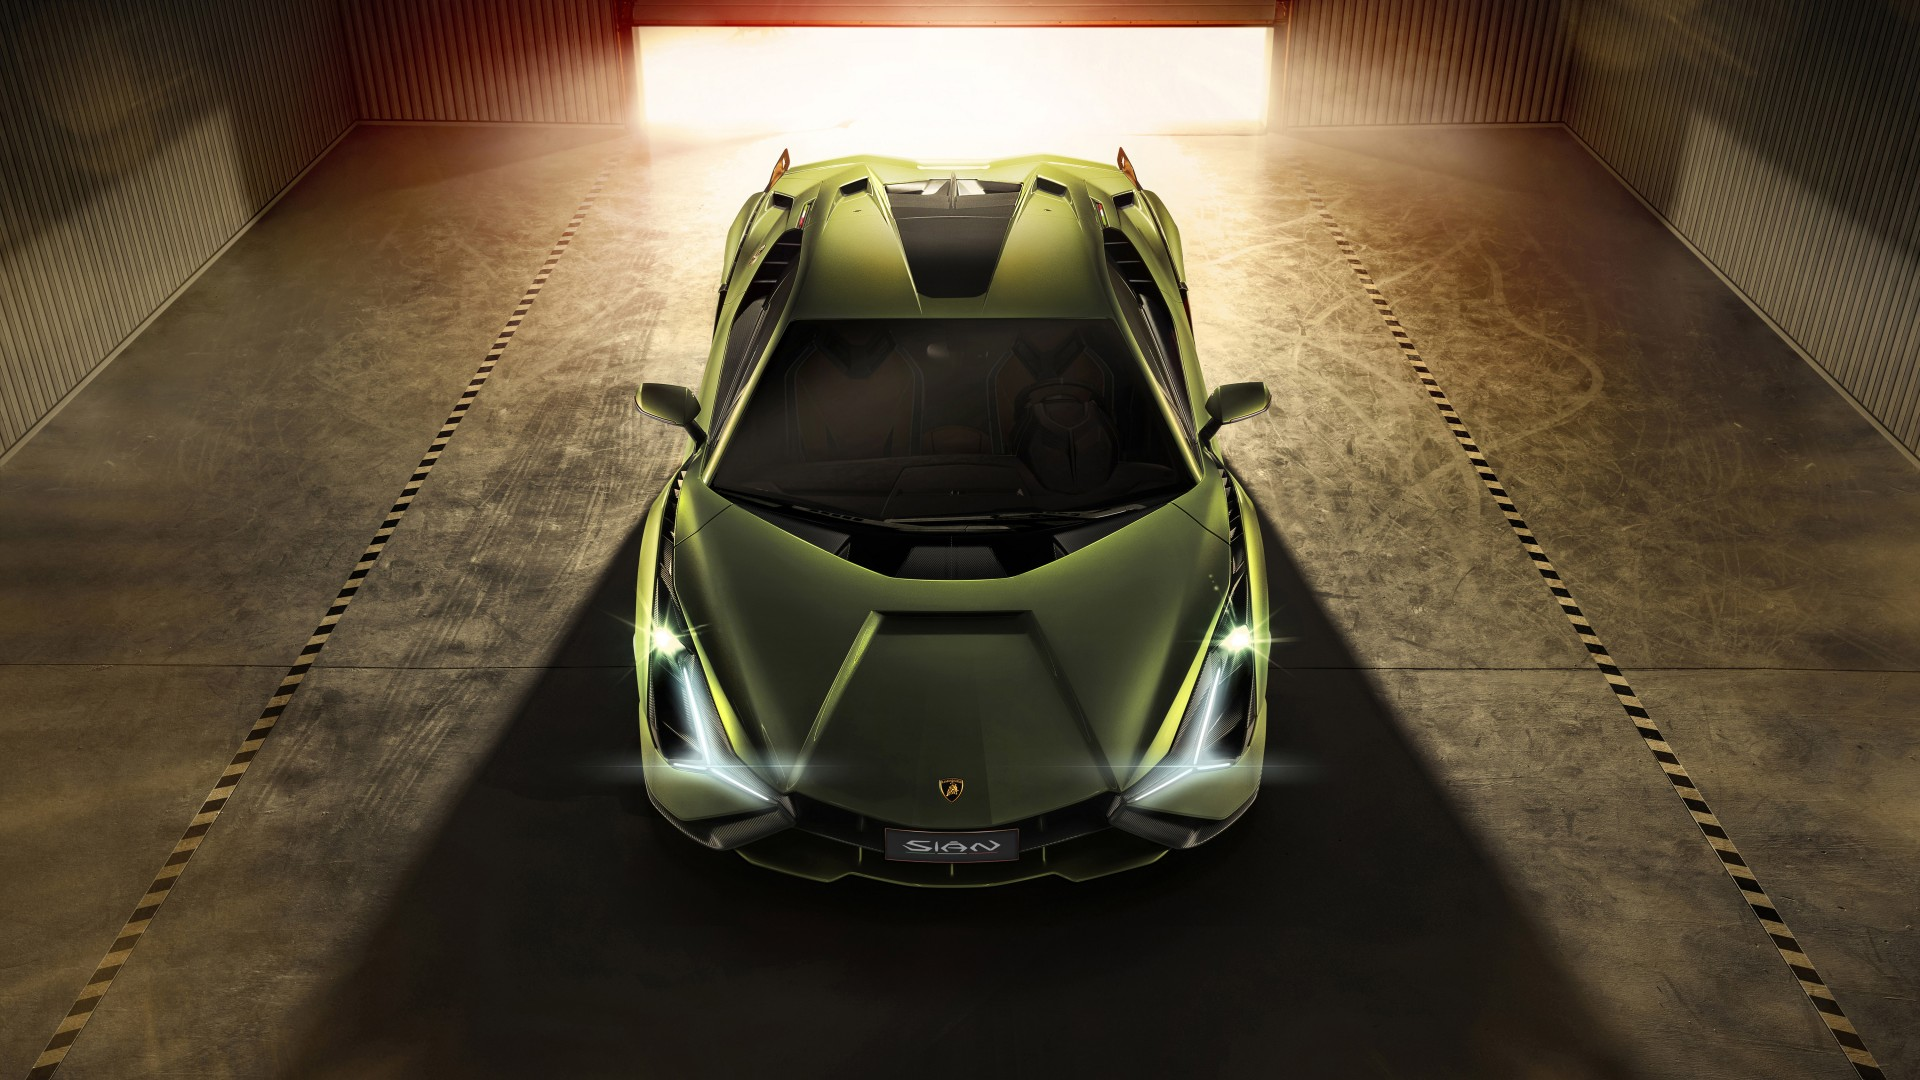 Lamborghini Sian 2019 4k 9 Wallpaper Hd Car Wallpapers